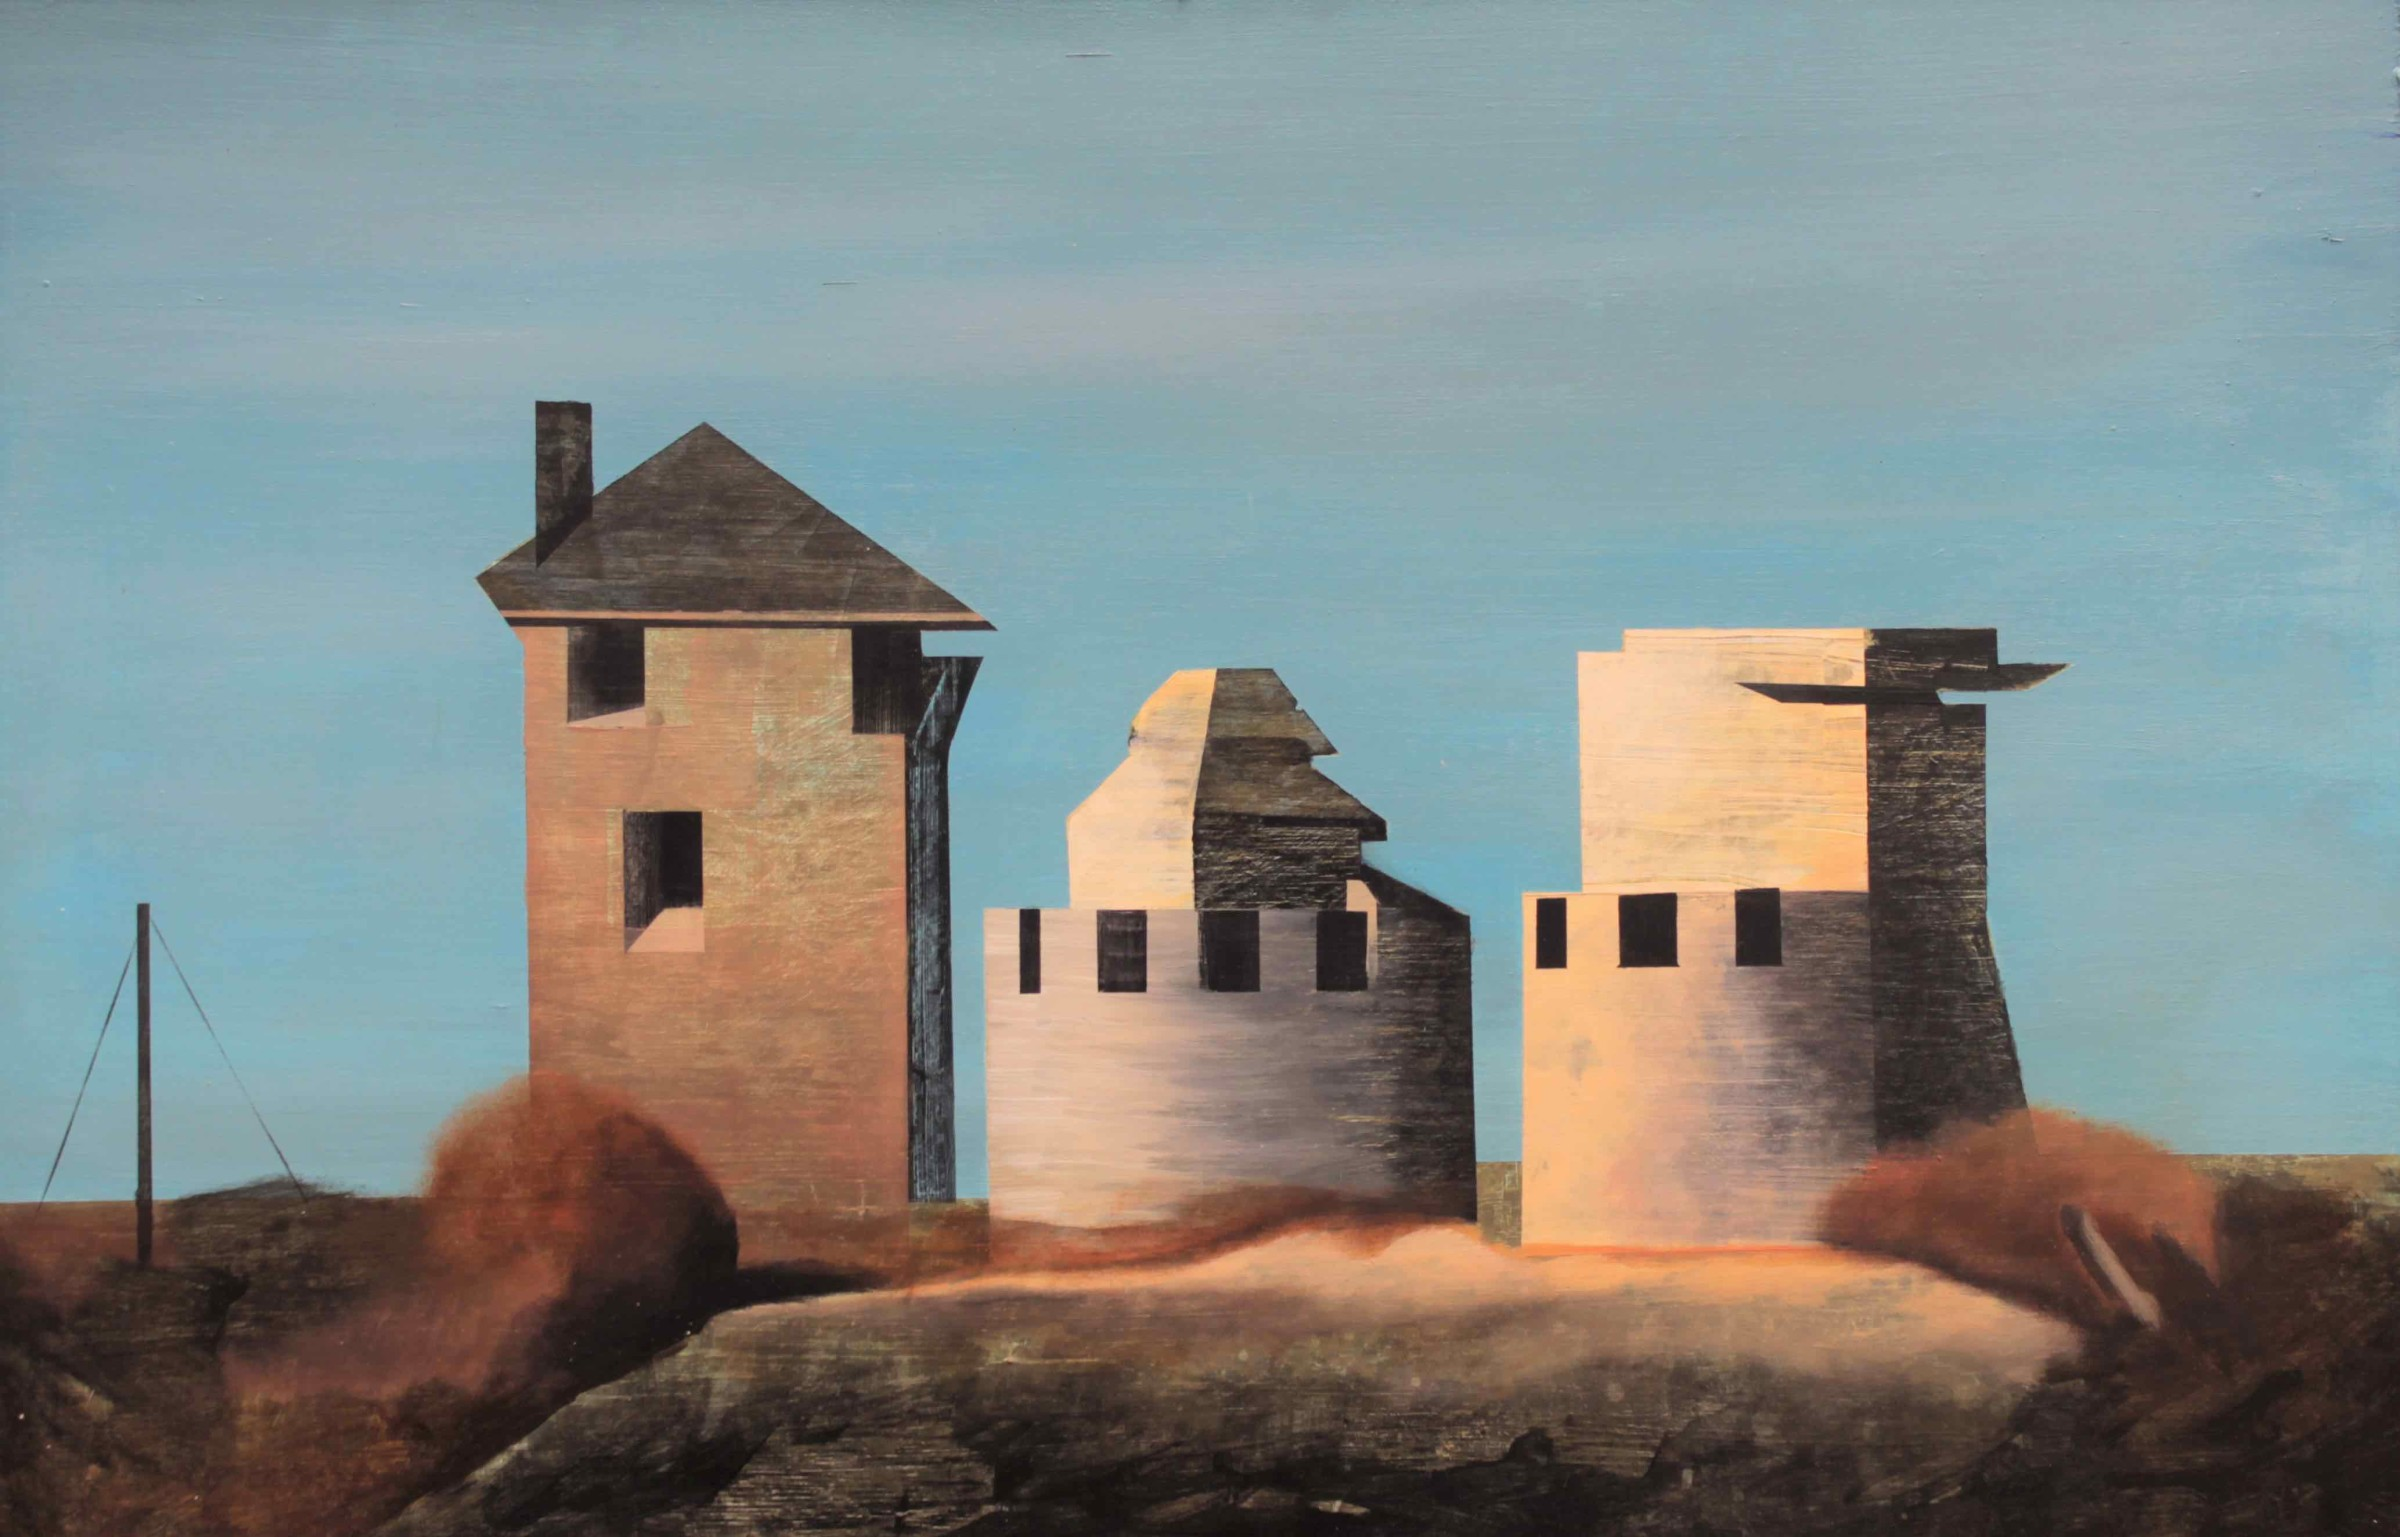 <span class=&#34;link fancybox-details-link&#34;><a href=&#34;/artists/184-euan-mcgregor/works/2713-euan-mcgregor-isle-of-sheppey-bastions/&#34;>View Detail Page</a></span><div class=&#34;artist&#34;><strong>Euan McGregor</strong></div> <div class=&#34;title&#34;><em>Isle of Sheppey Bastions</em></div> <div class=&#34;medium&#34;>Acrylic on Board</div> <div class=&#34;dimensions&#34;>47 x 71 cm </div><div class=&#34;price&#34;>£2,100.00</div>